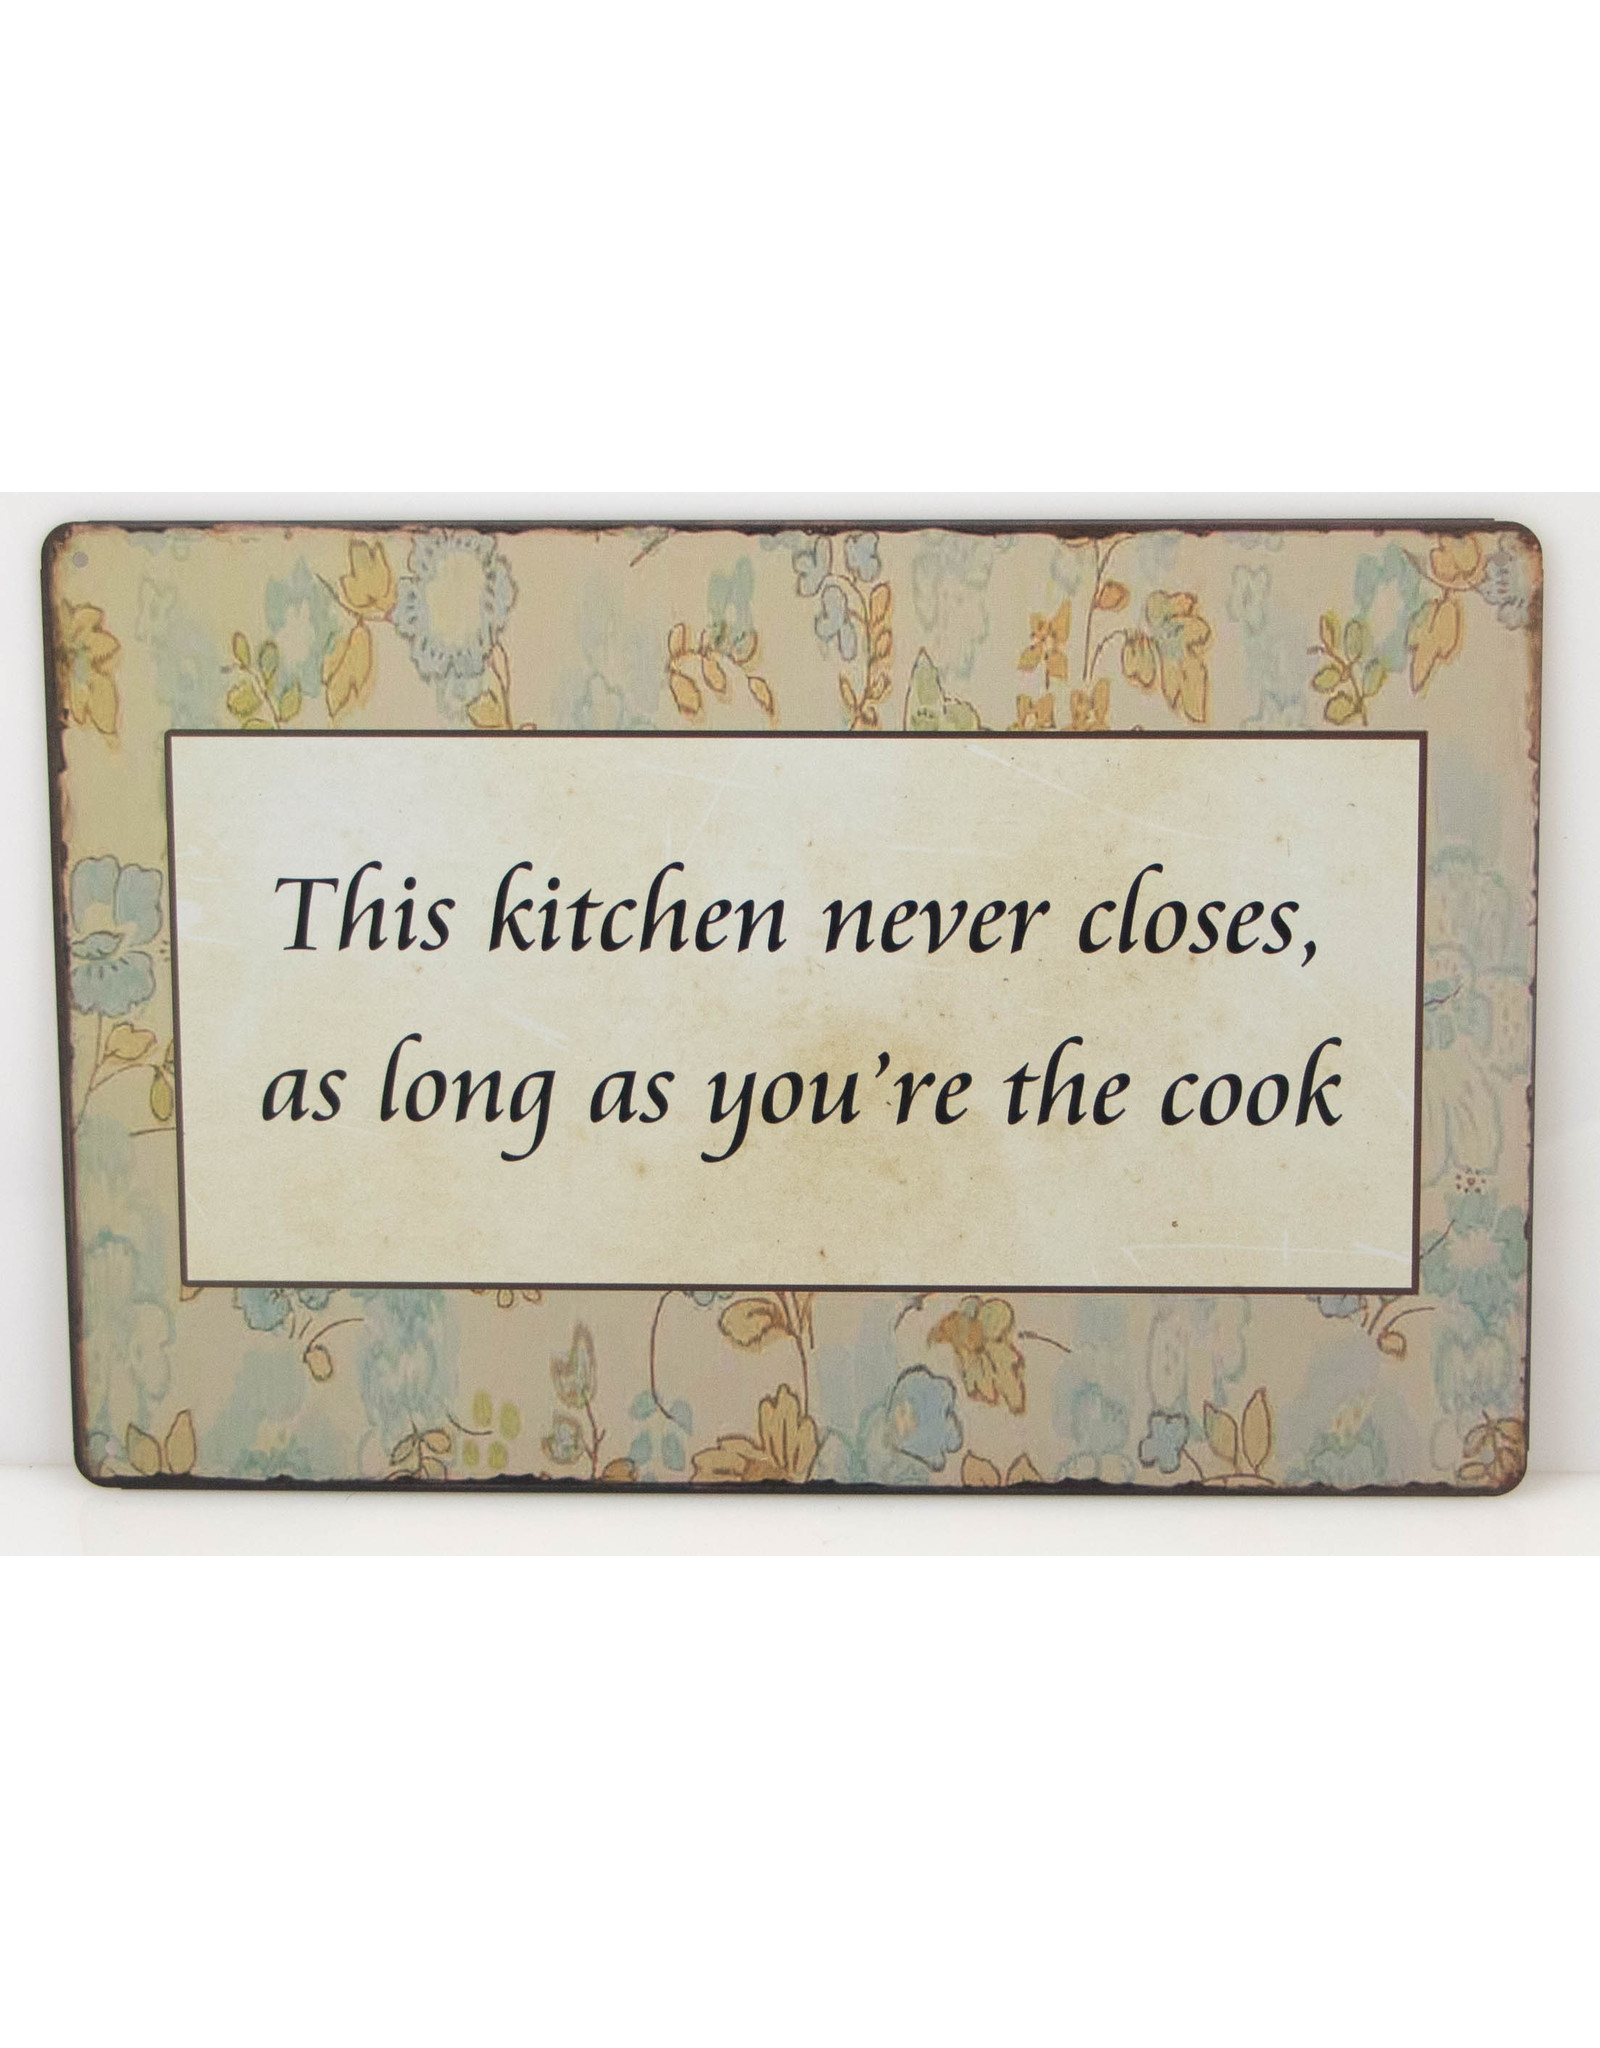 This kitchen never closes, as long as you're the cook